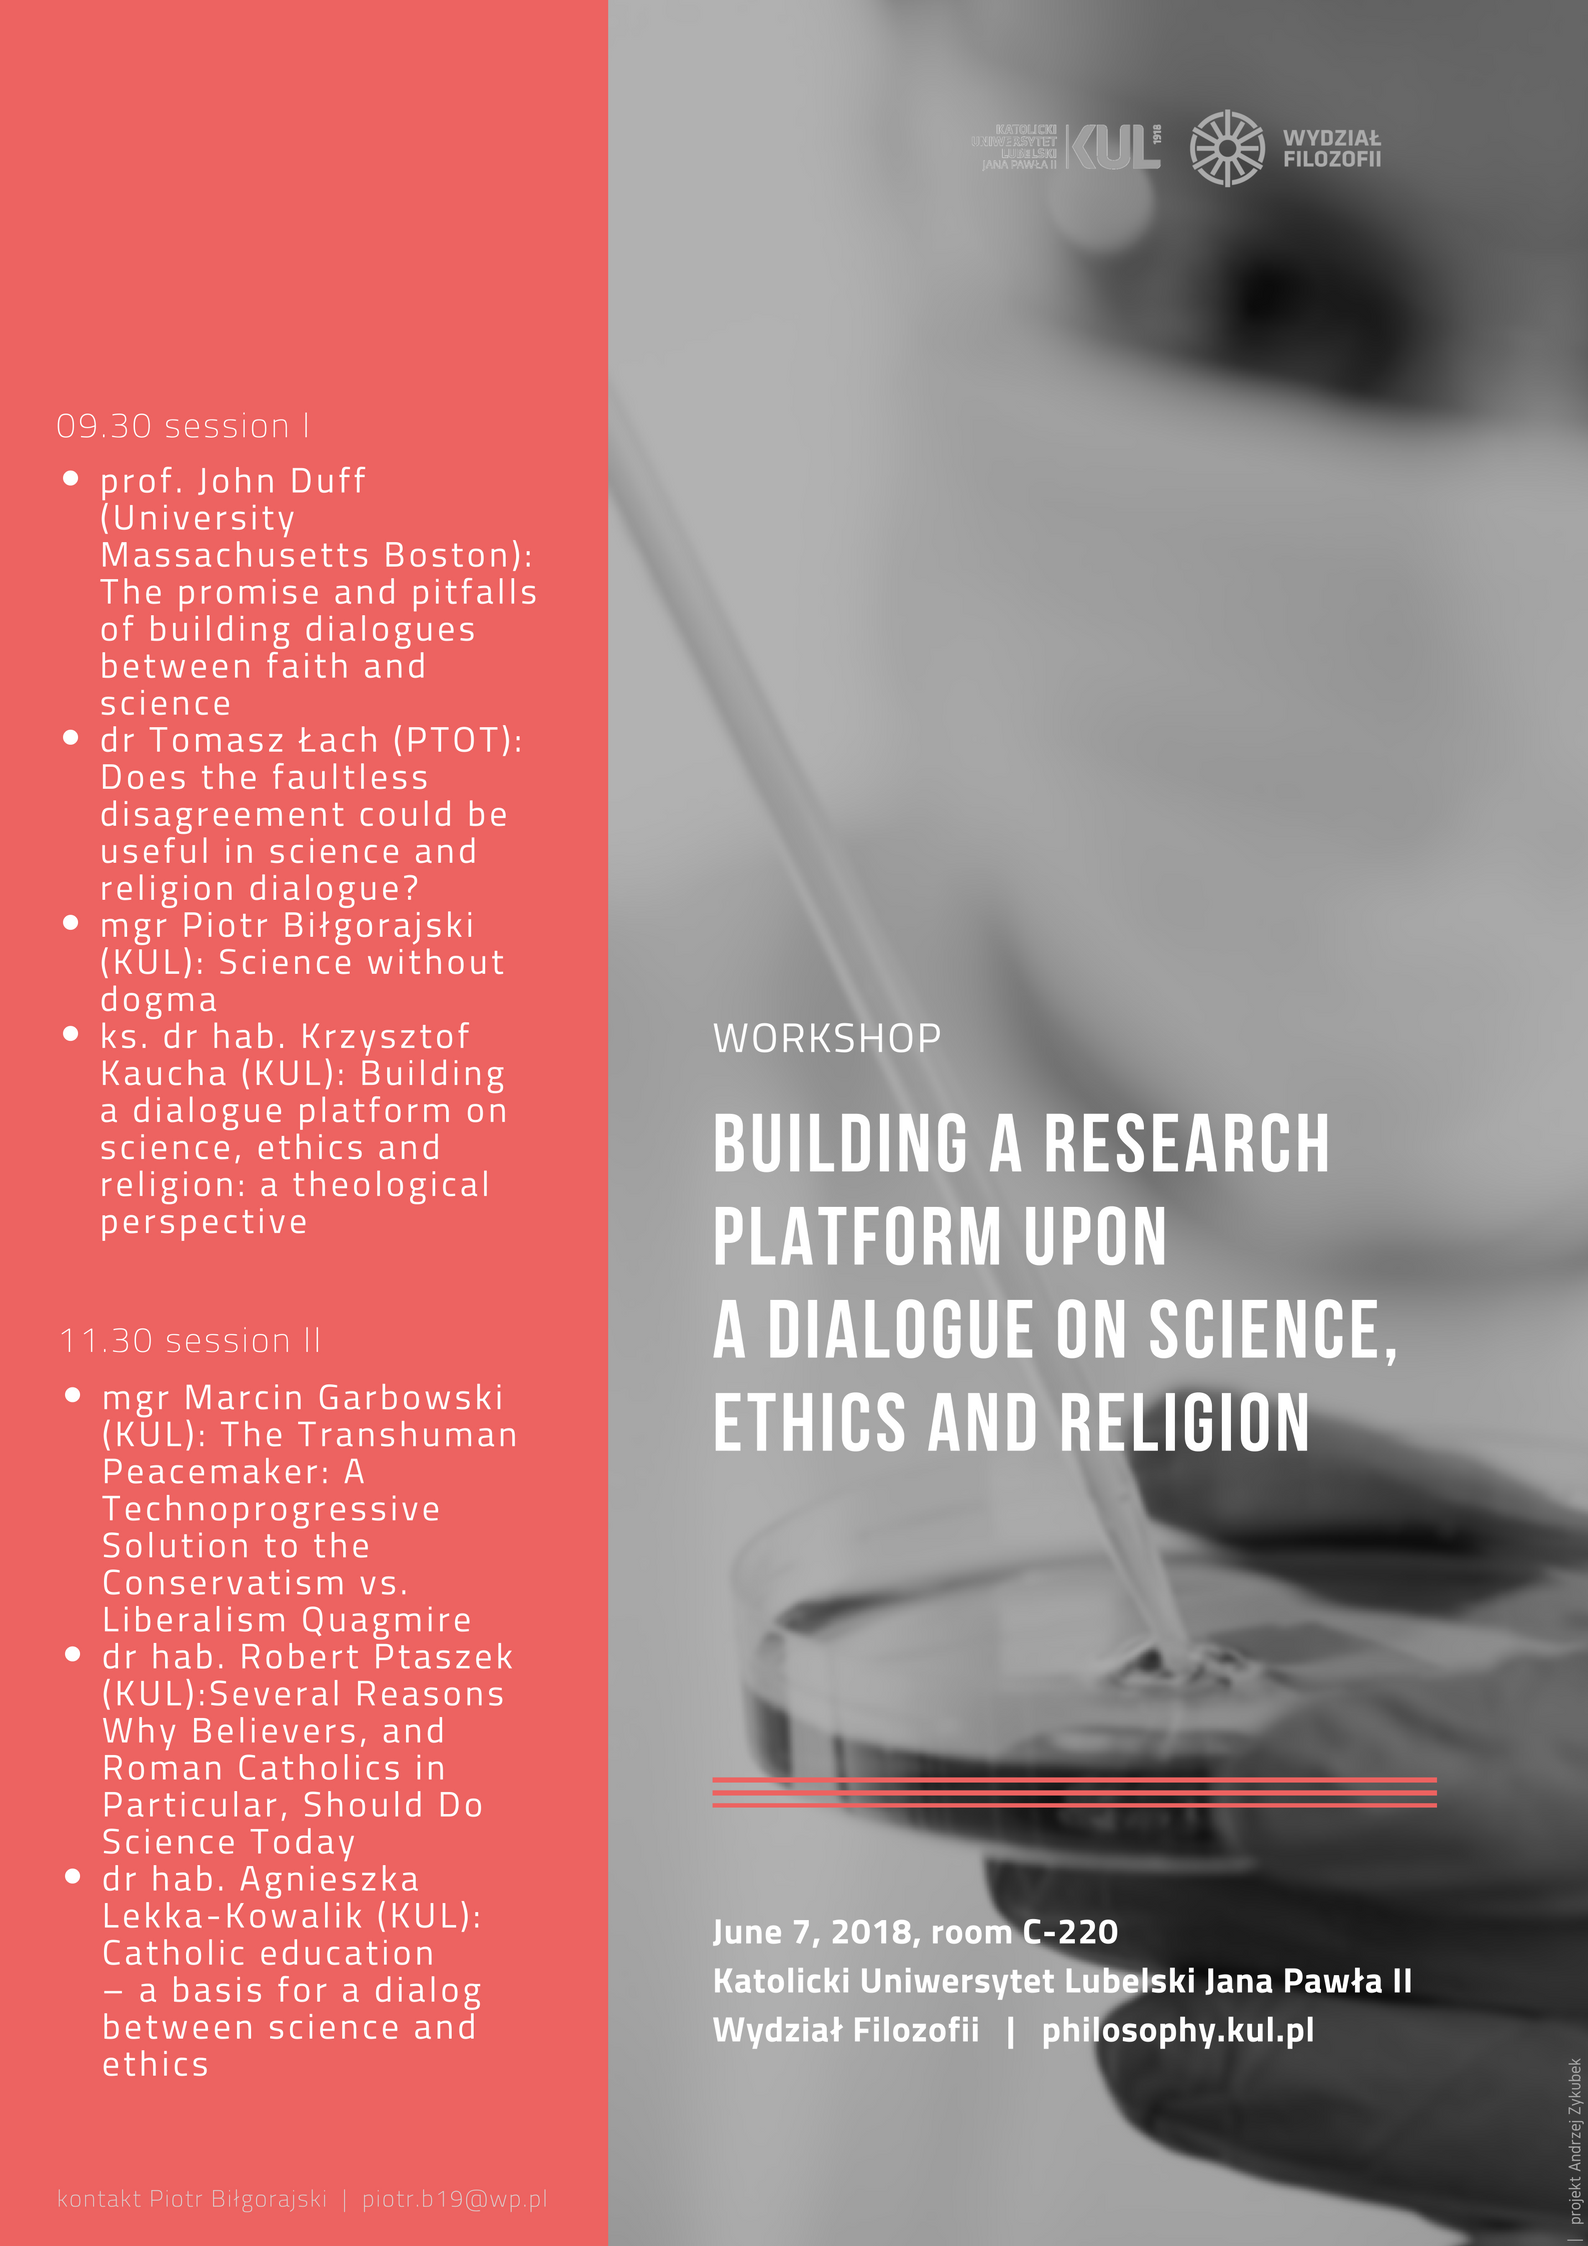 Building a Research Platform upon a Dialogue on Science, Ethics and Religion